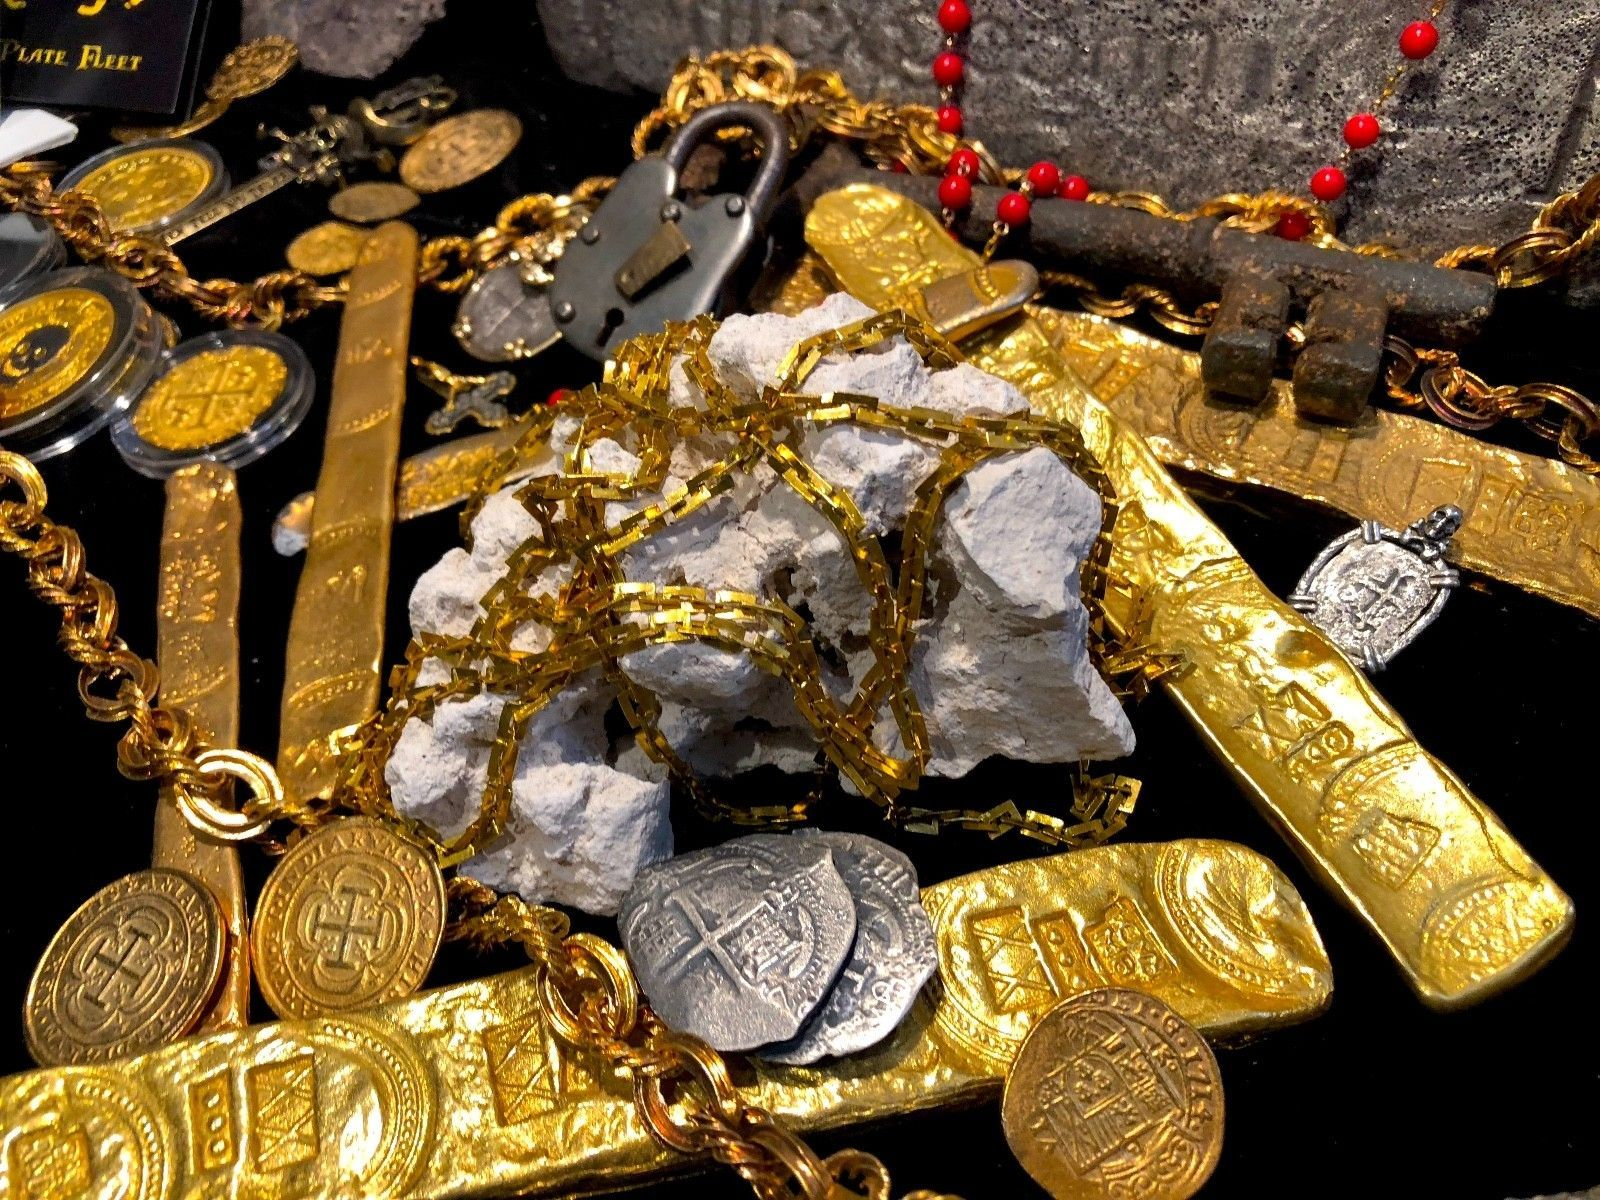 "GOLD CHAIN 66"" SHIPWRECK TREASURE 1656 ""MARAVILLAS"" MONEY CHAIN PIRATE GOLD COIN"